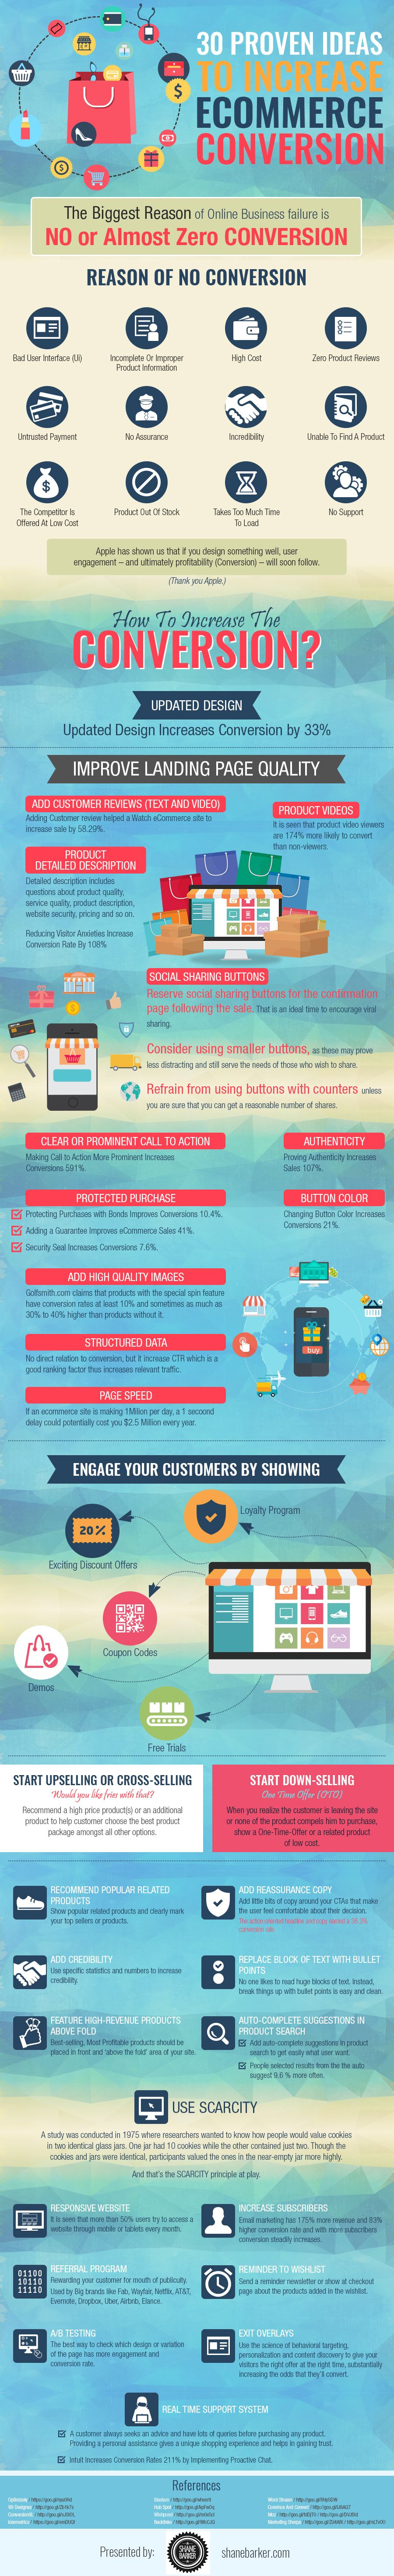 Conversions on your online store.. that's what it's all about.